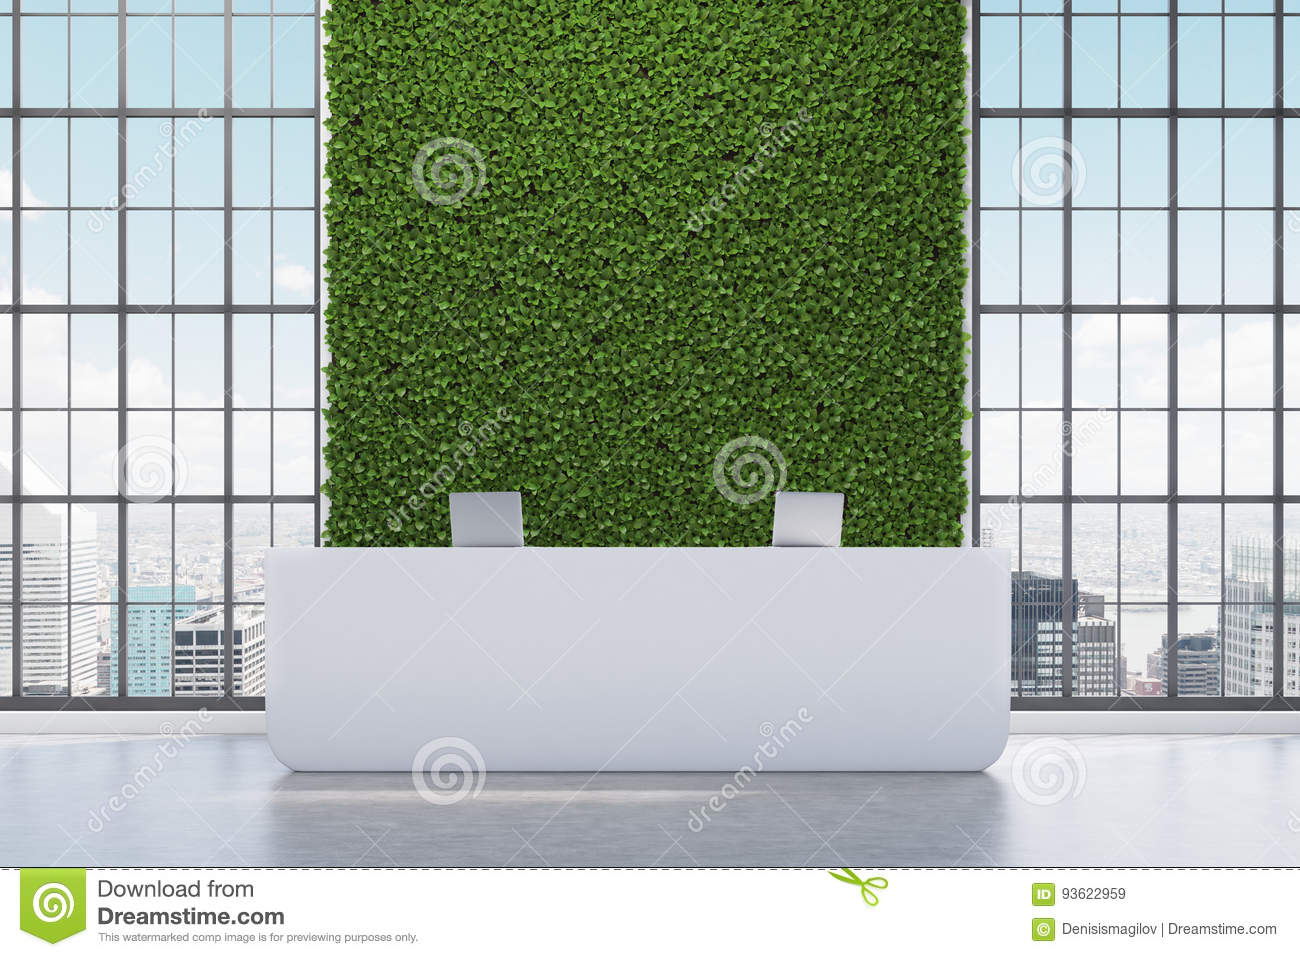 Download Green Wall Reception Counter Stock Illustration   Illustration Of  Corporate, Luxury: 93622959